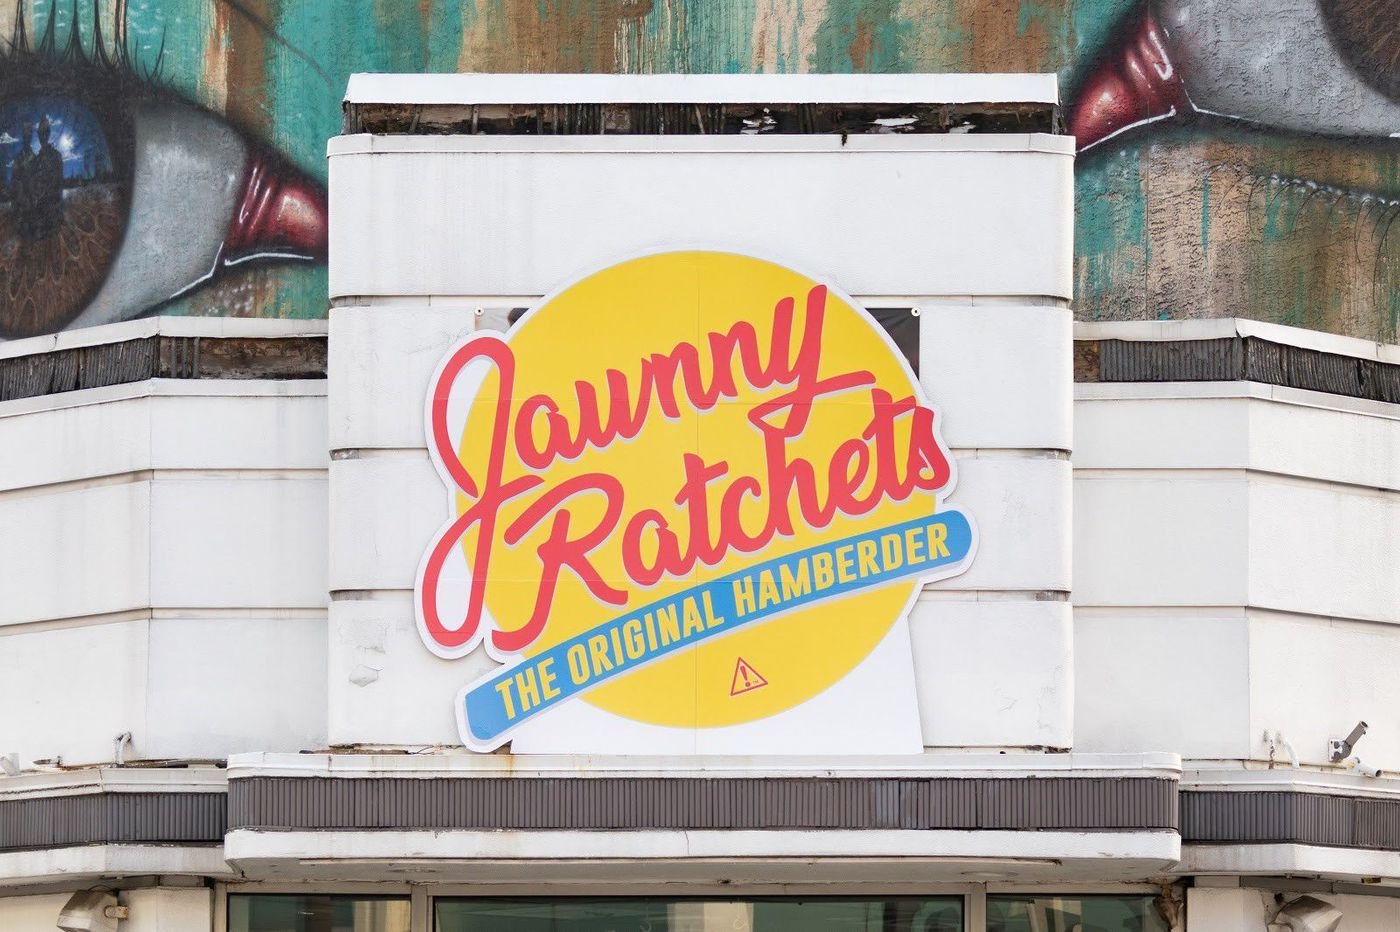 Jawnny Ratchets? South Street's former Johnny Rockets gets a new sign, thanks to art installation